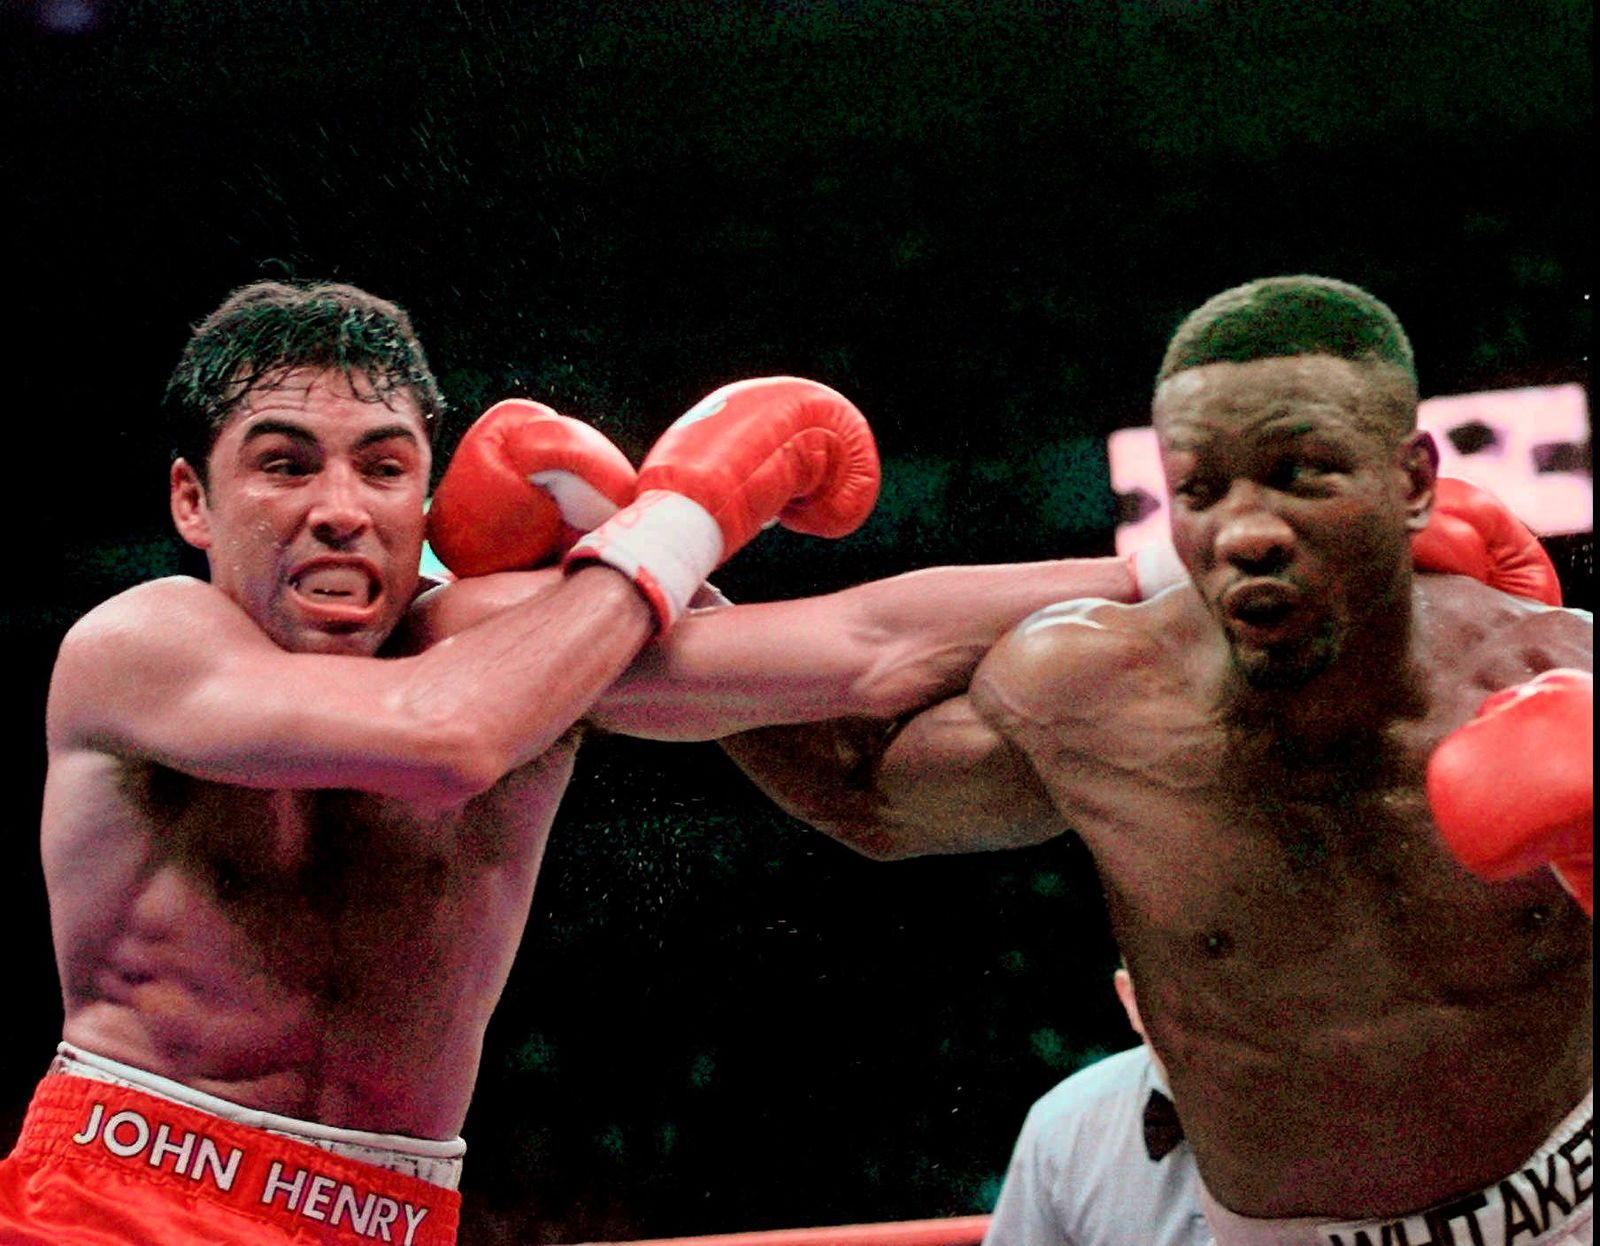 FILE - In this April 12, 1997, file photo, Oscar De La Hoya and Pernell Whitaker, right, exchange punches during their WBC Welterweight Championship fight at Thomas & Mack Center in Las Vegas.{ } (AP Photo/Bob Galbraith, File)